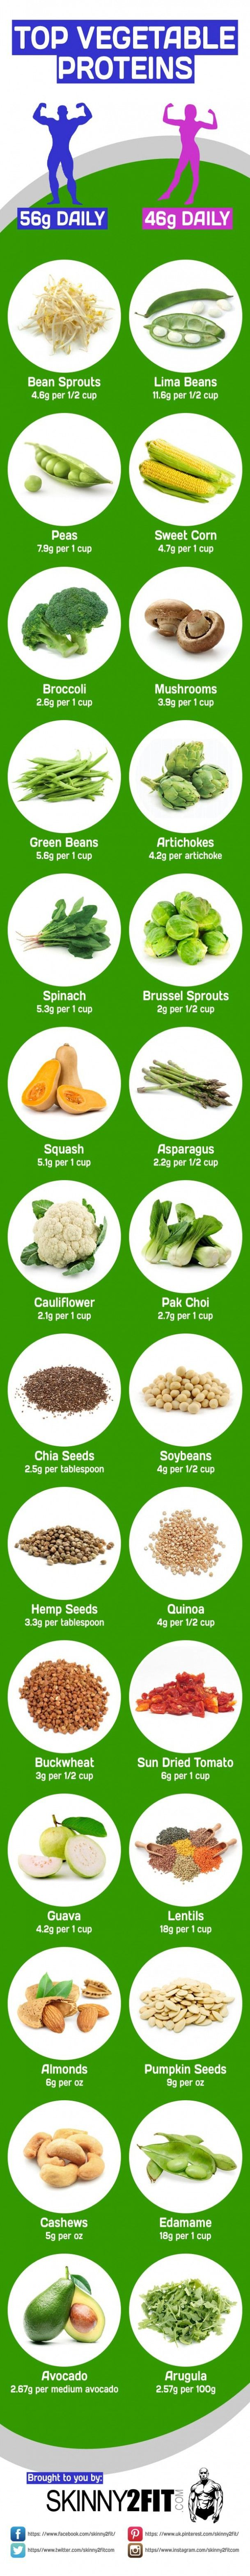 Protein is essential for both muscle growth and repair. Here are some of the top vegetable proteins you could add to your diet. #dietplanstoloseweightforwomen #athletenutrition